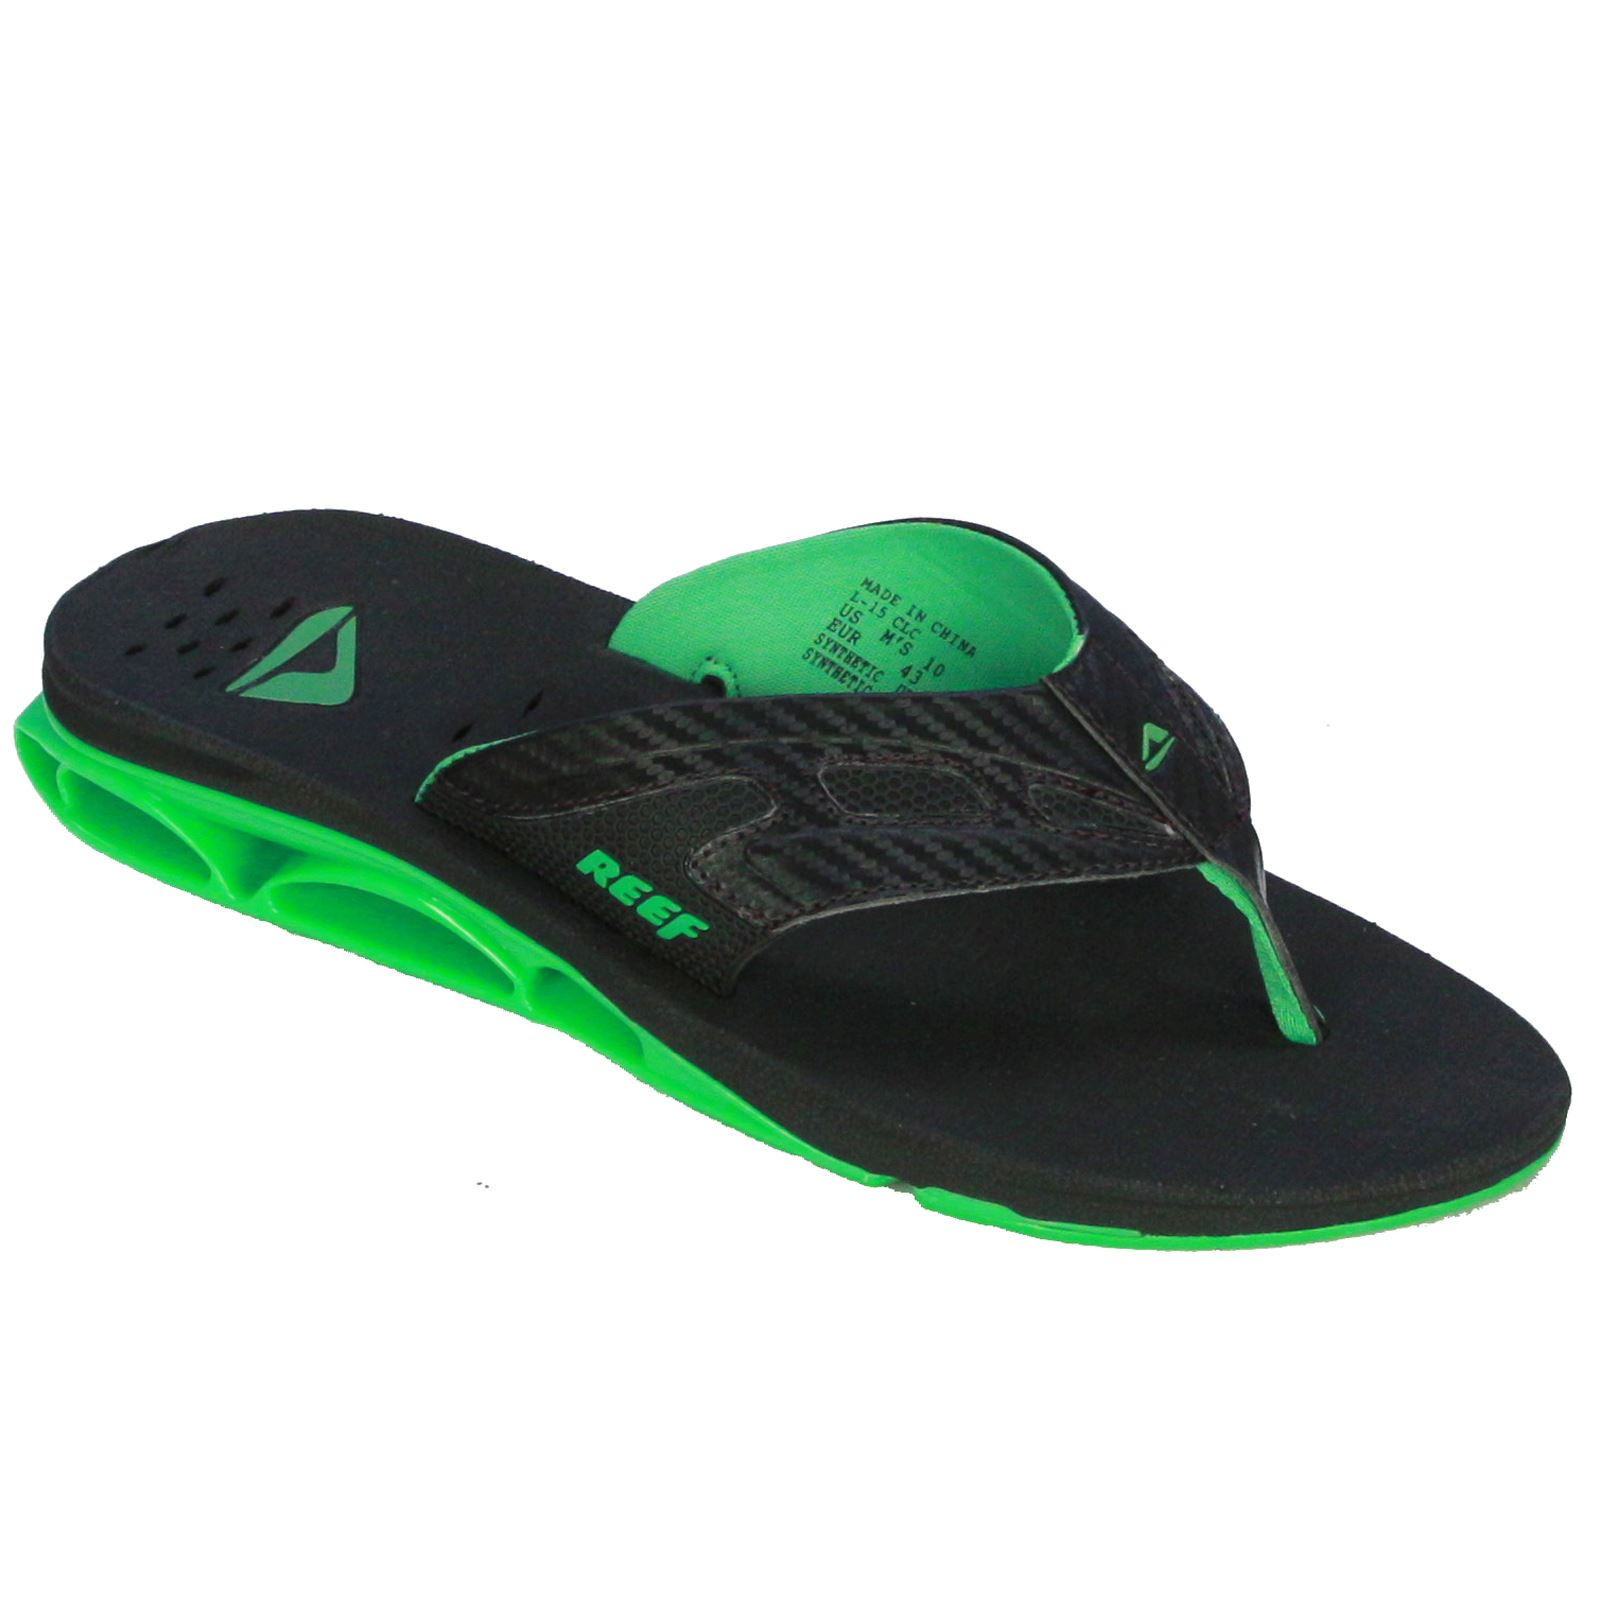 reef men 39 s sandal with bottle opener xs1 black green ebay. Black Bedroom Furniture Sets. Home Design Ideas